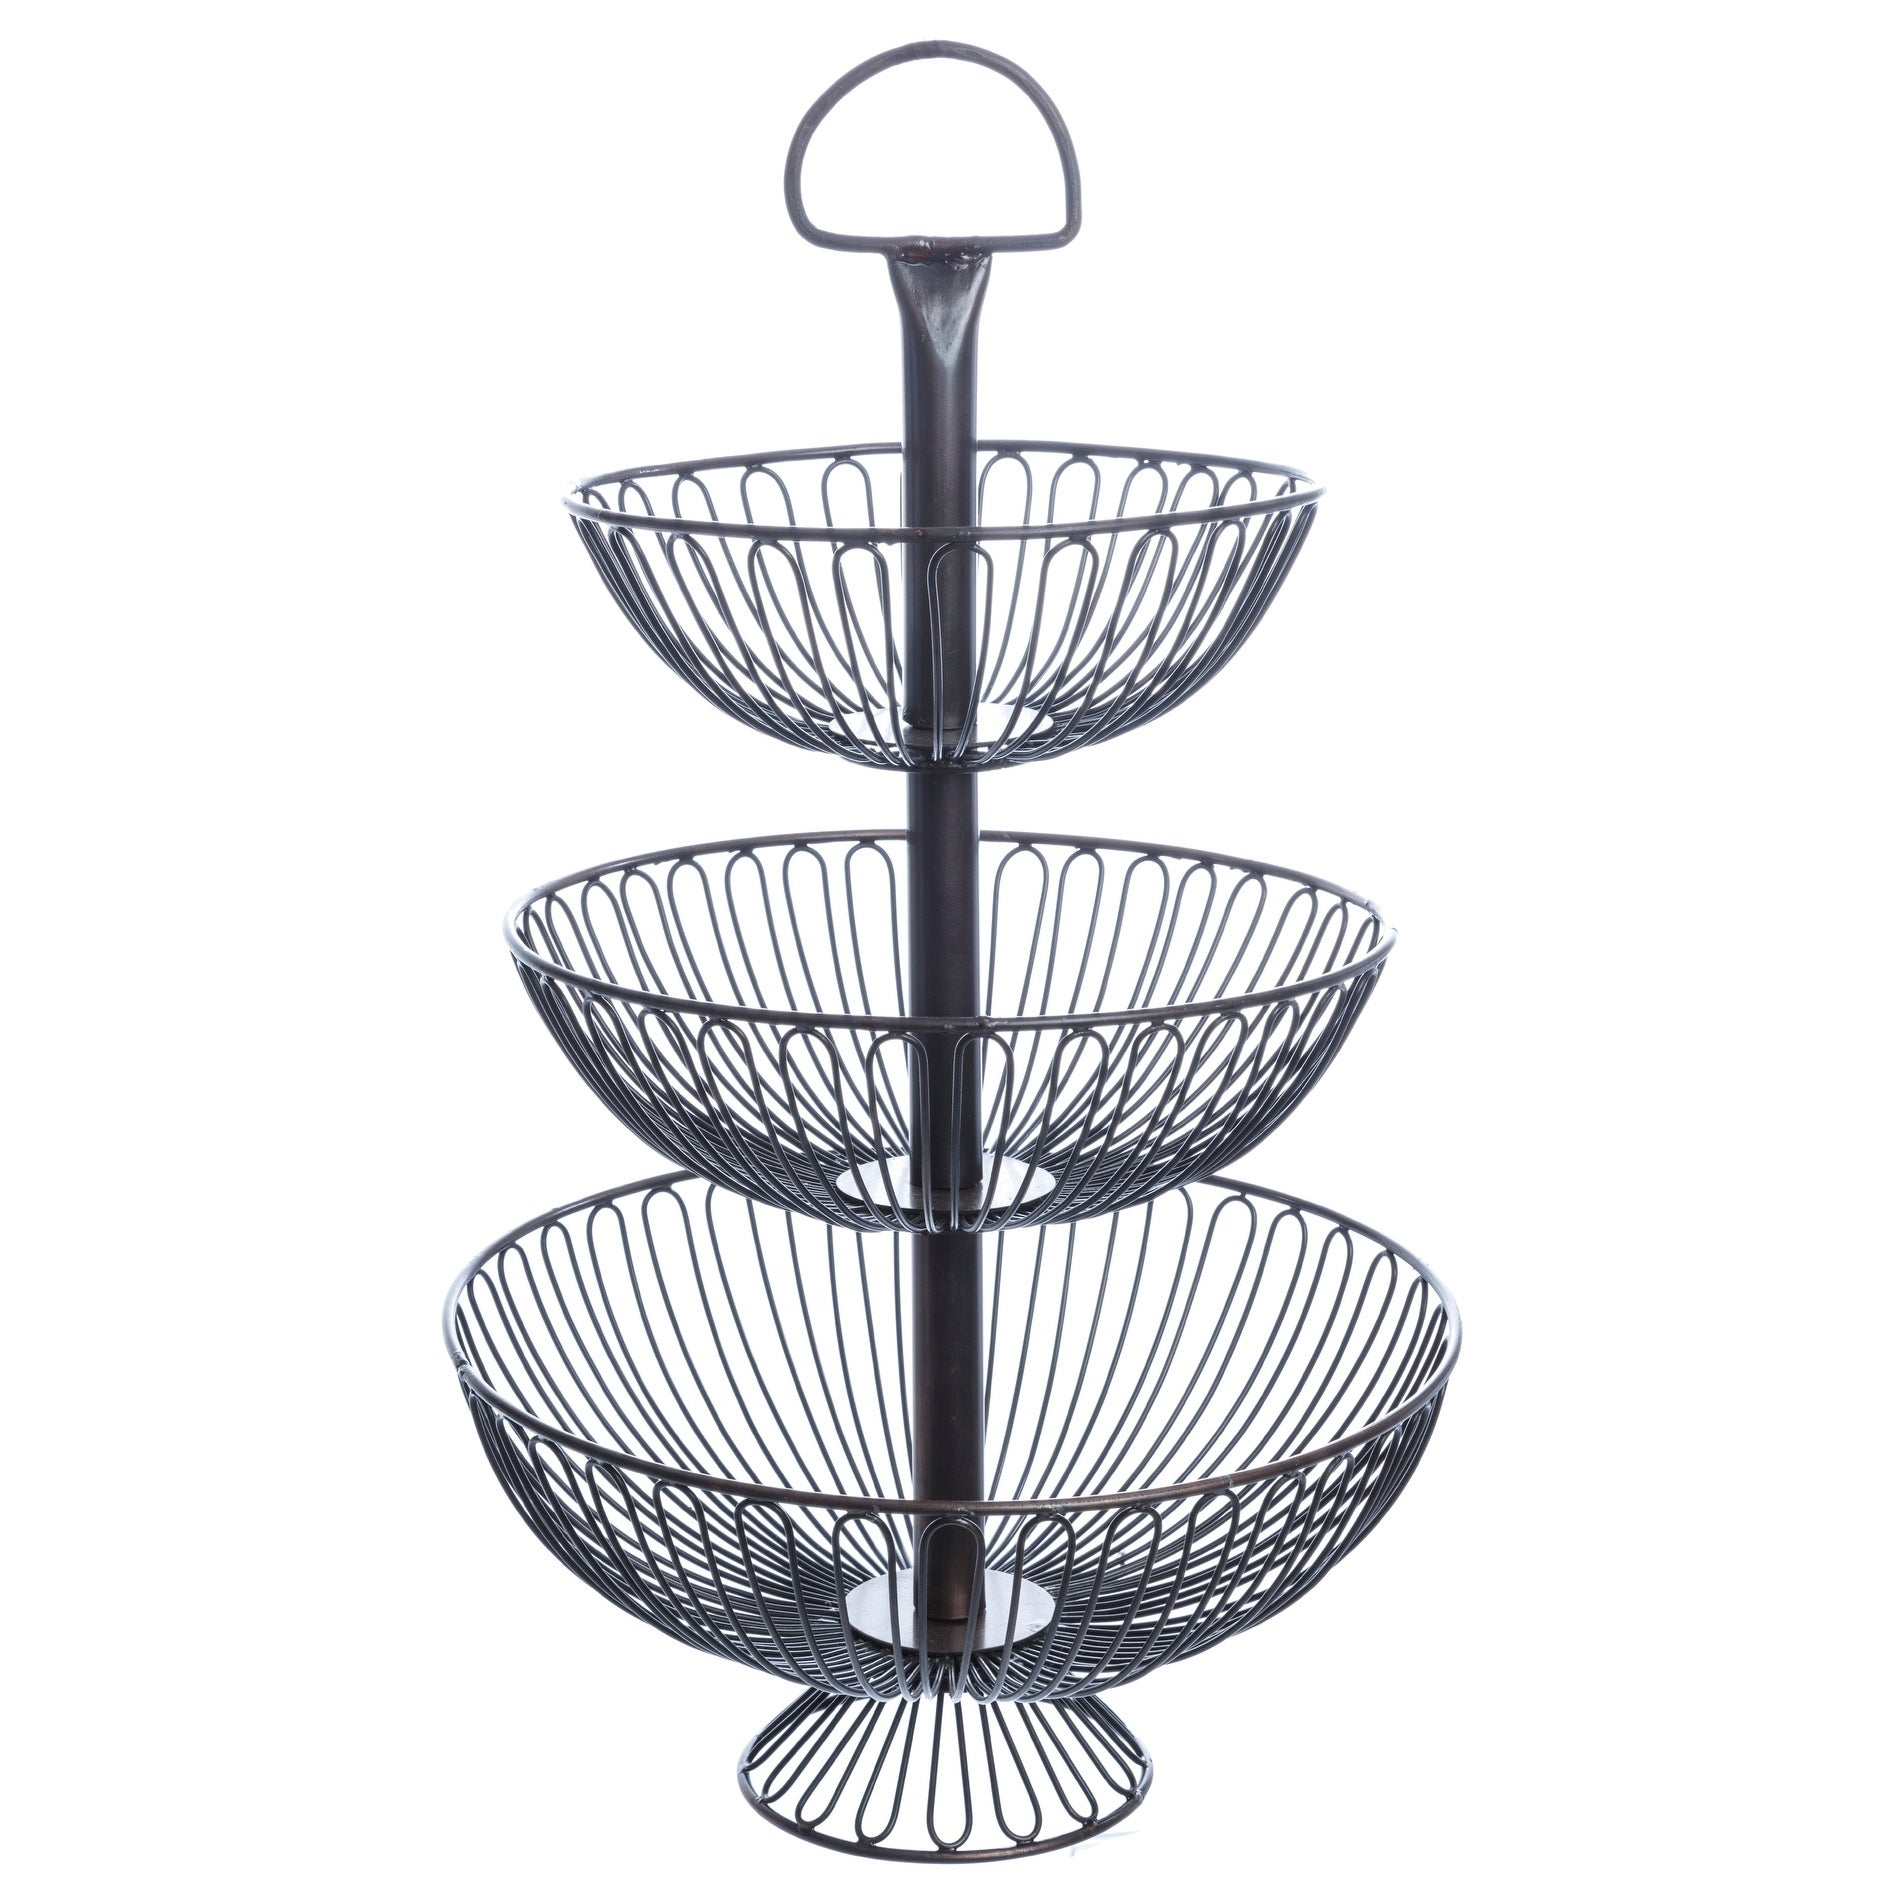 24 Inch Three Tier Decorative Wire Basket Stand Free Shipping Today 8379039